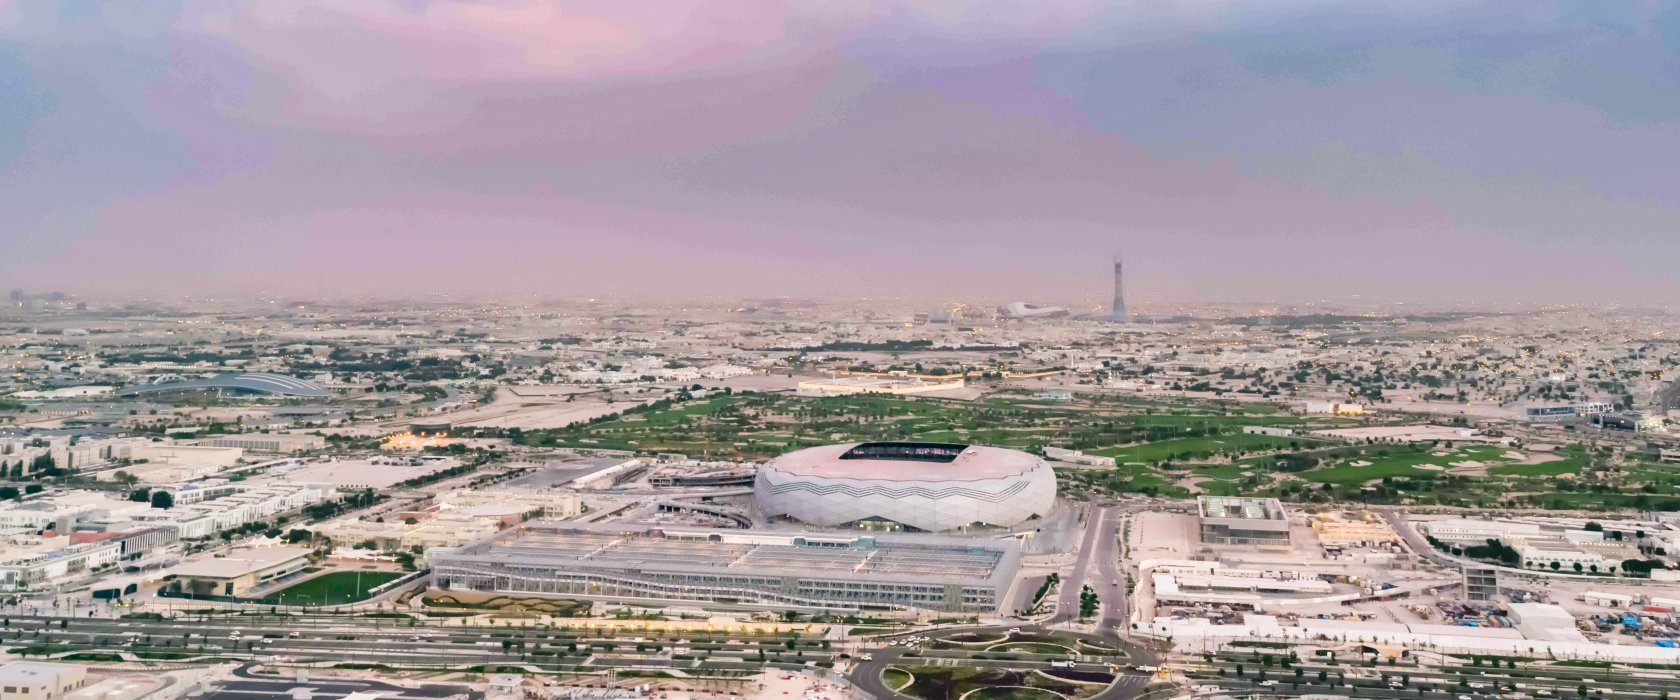 Education City Stadium's completion marked during special programs